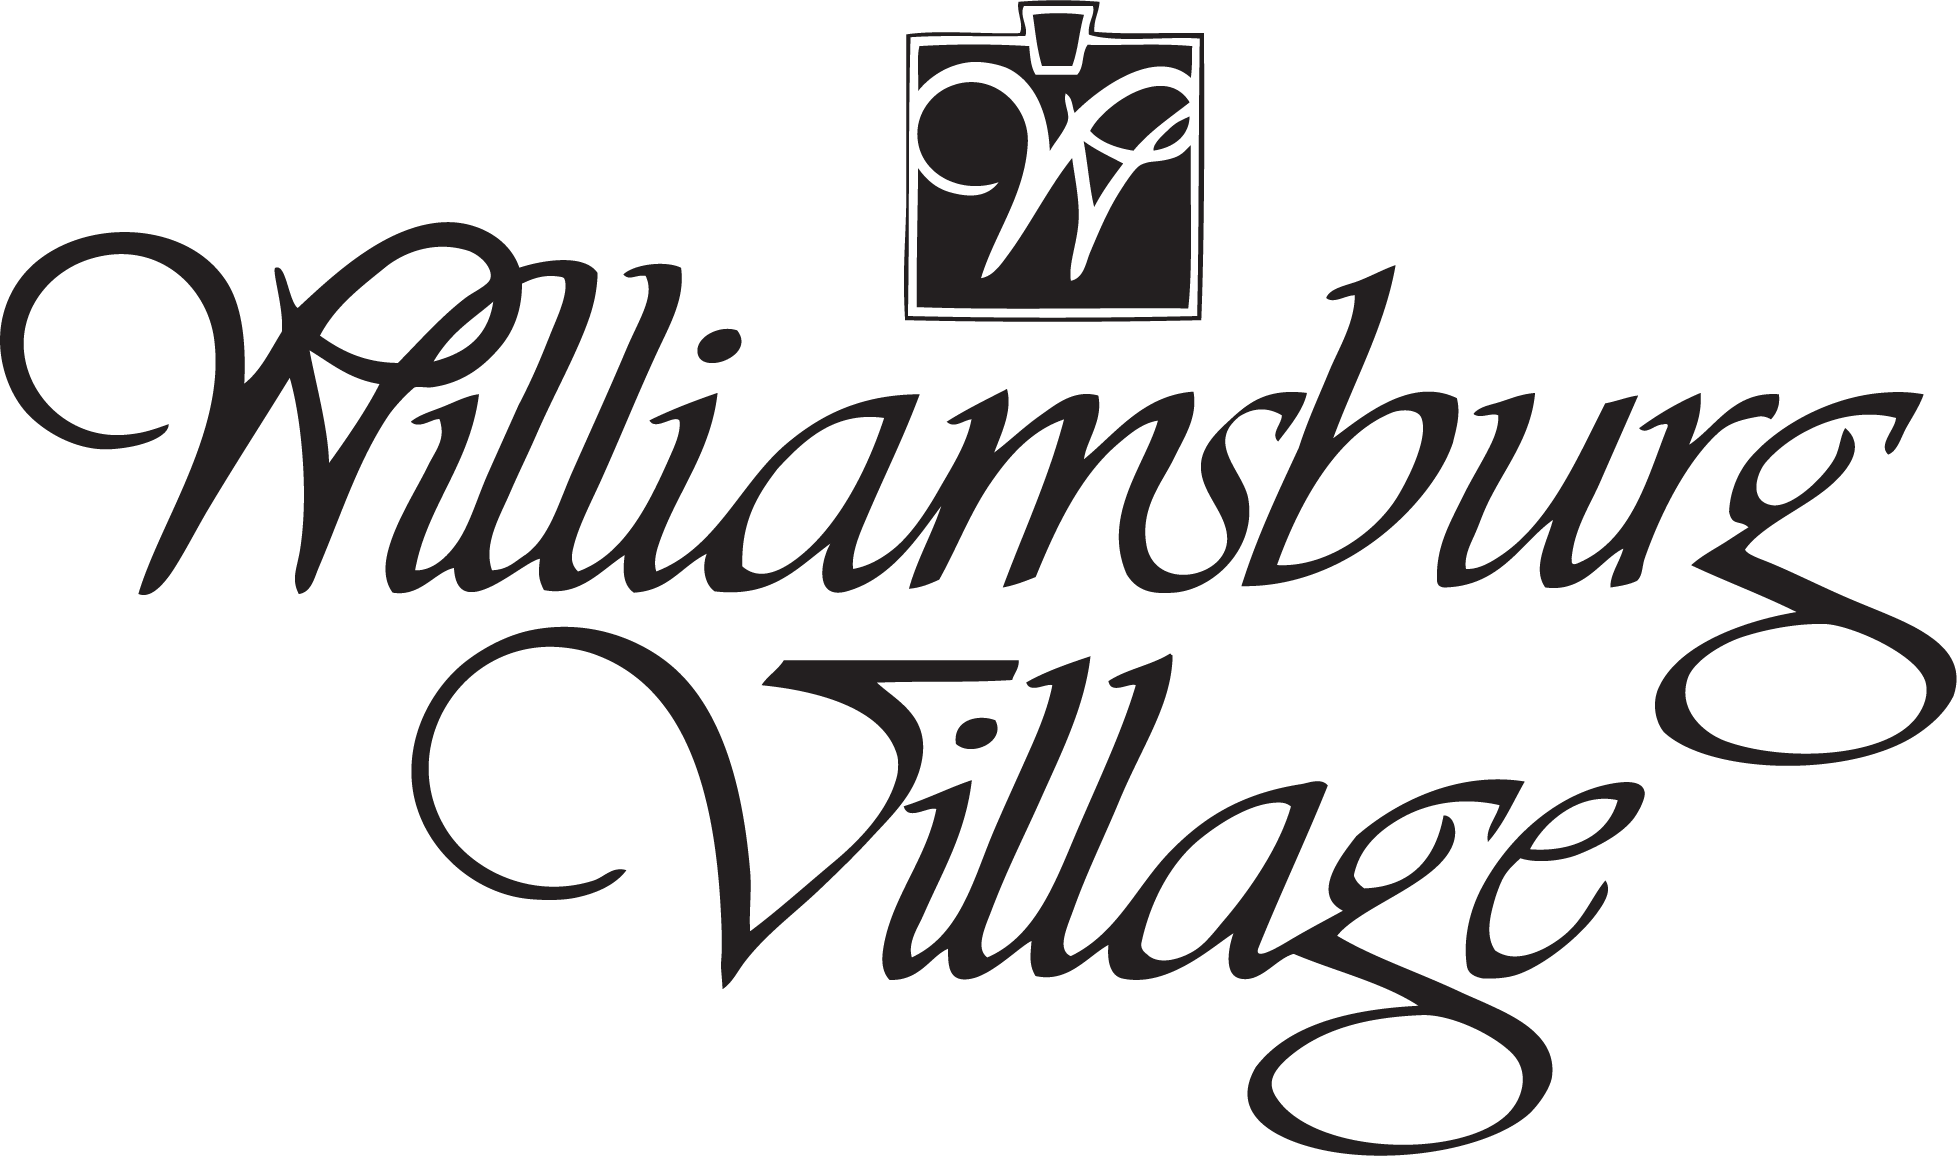 Williamsburg Village Logo